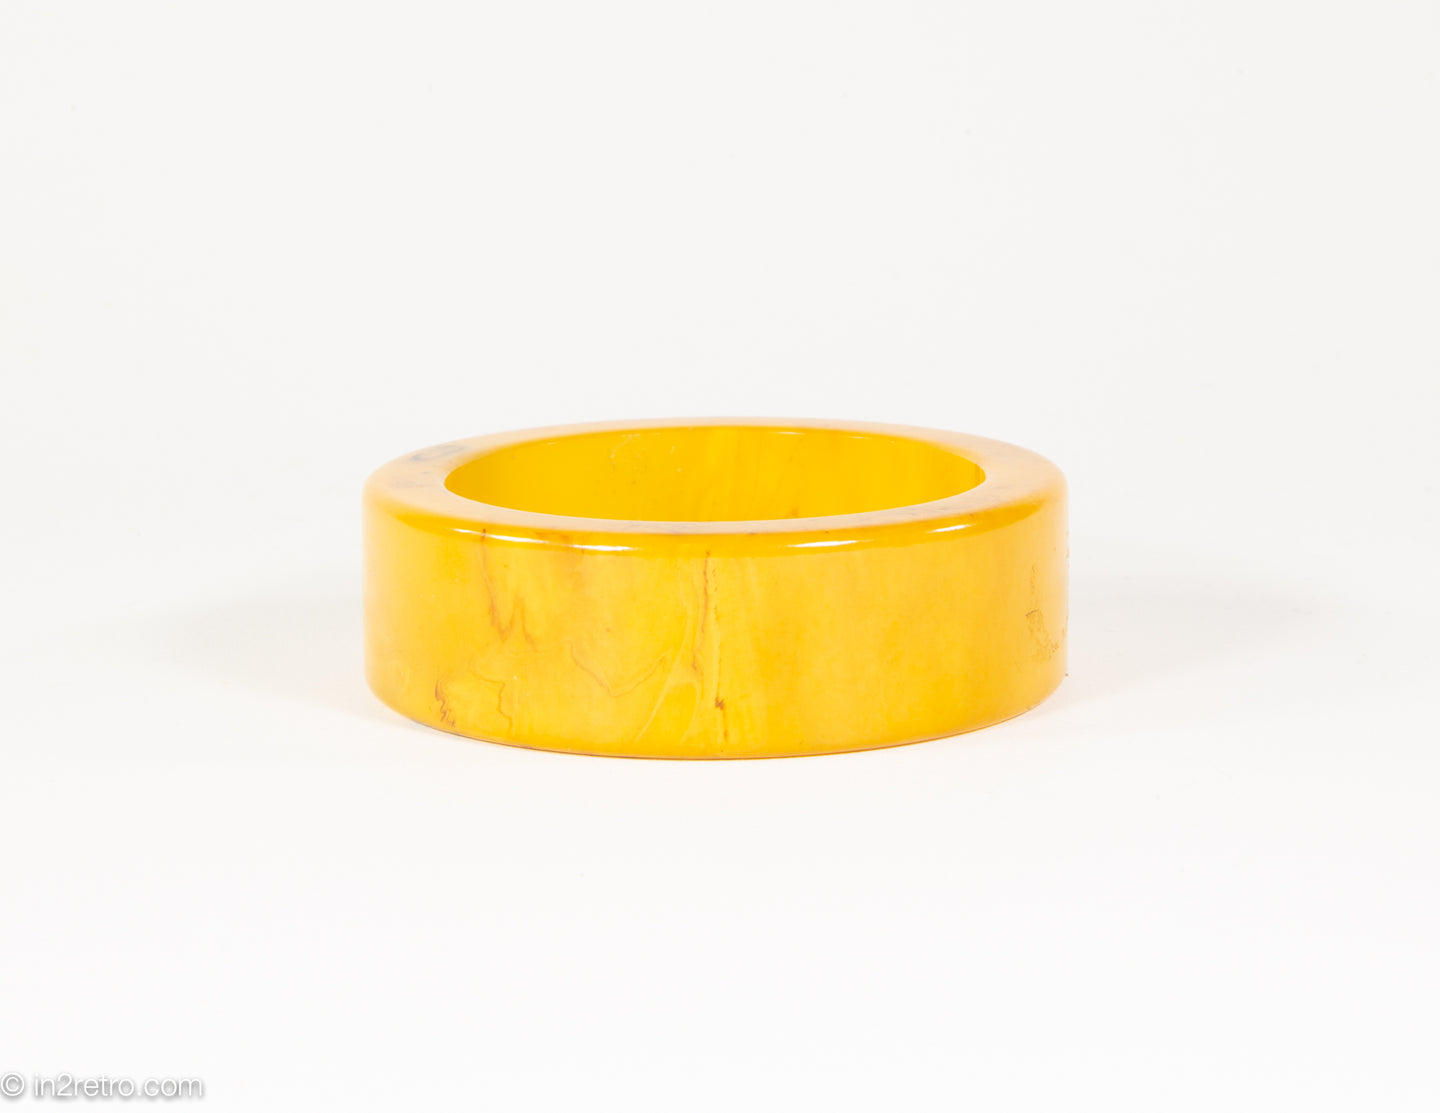 VINTAGE BAKELITE BUTTERSCOTCH MARBLED FLAT EDGE BANGLE BRACELET/ 1940s